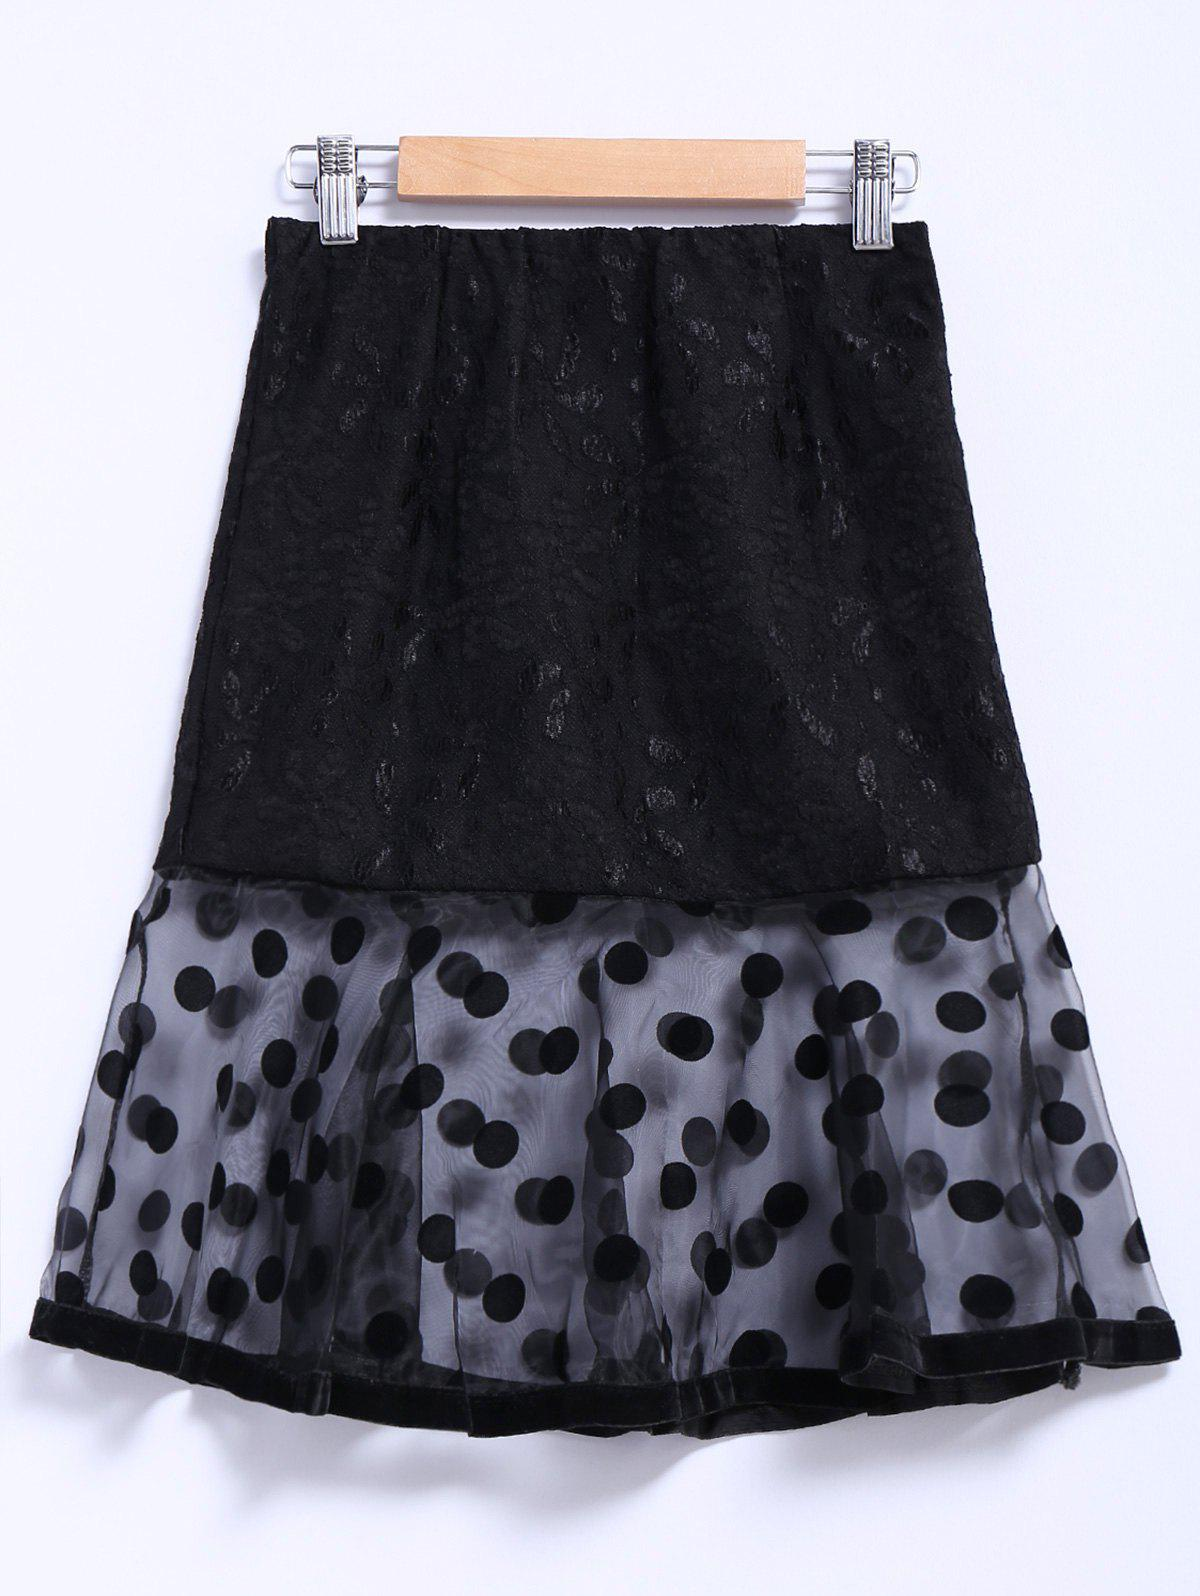 Shop Chic Style Organza Splicing Polka Dot Print Ruffles Black Women's Skirt